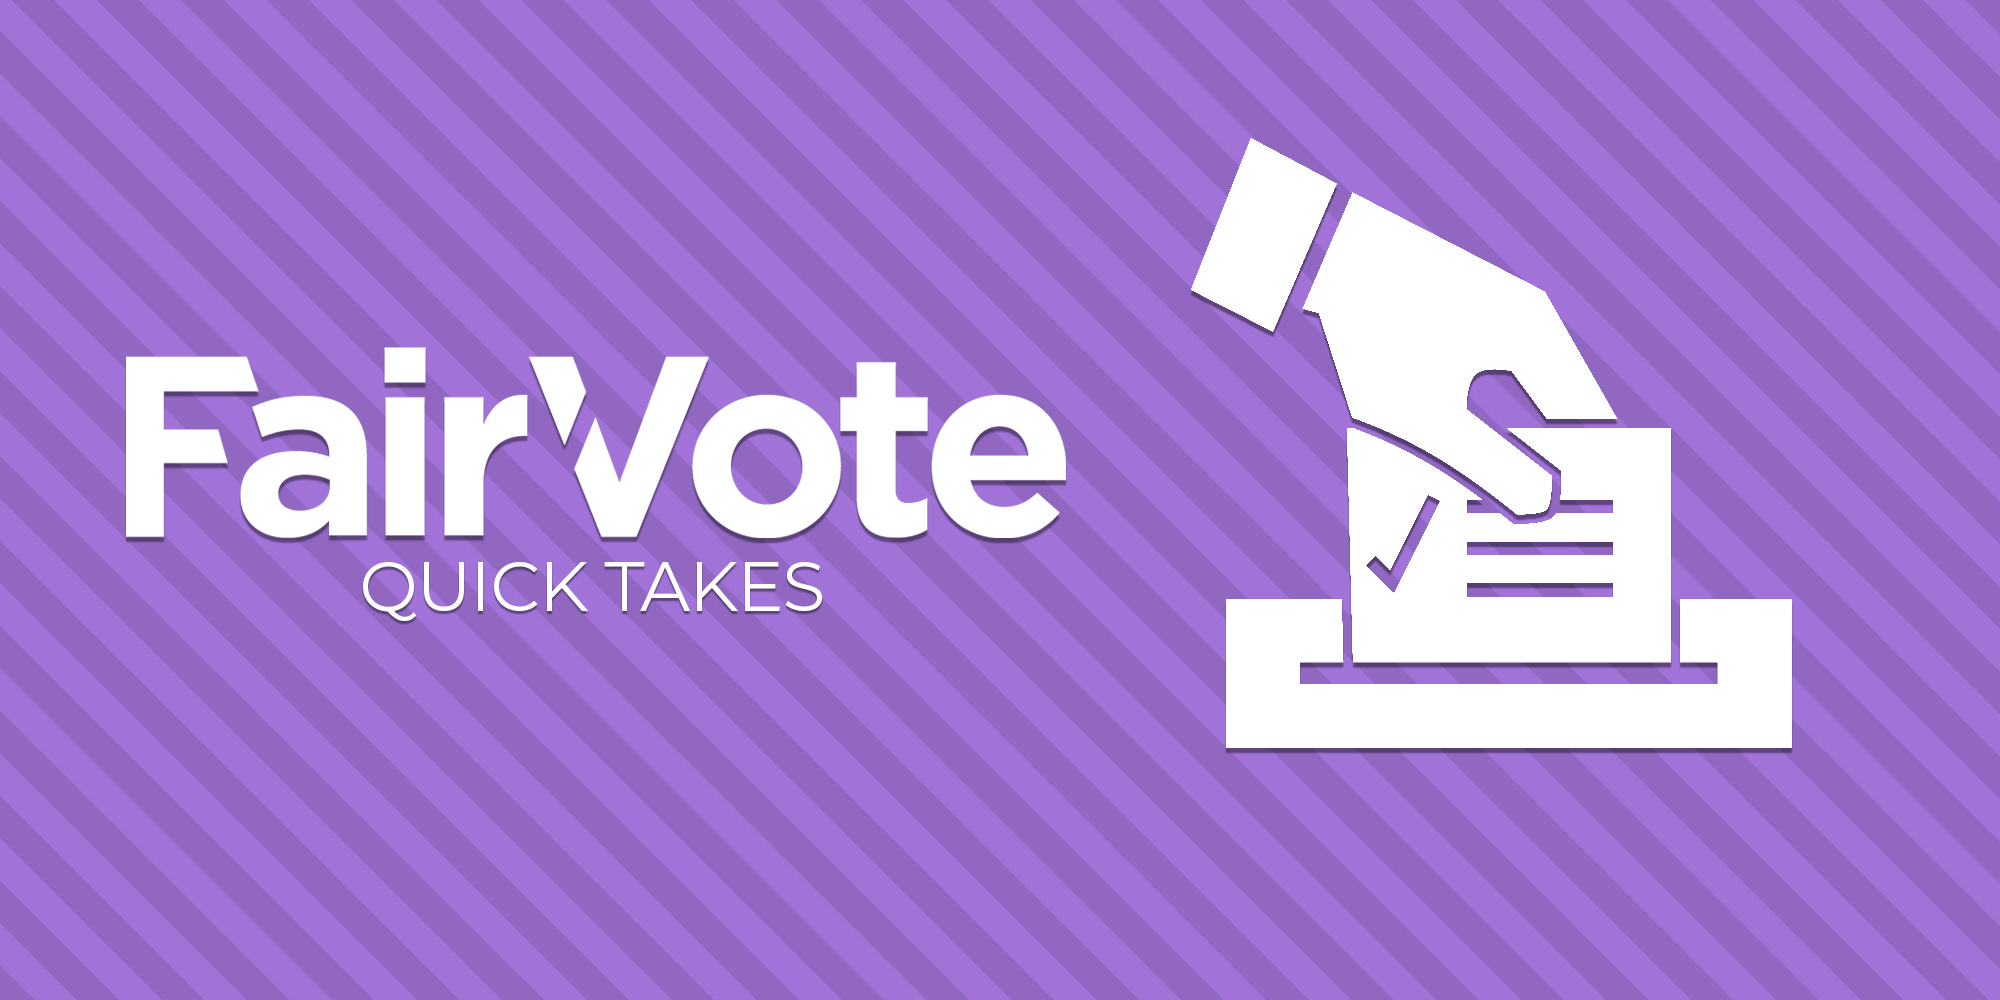 Want to make future presidential primaries better? Use ranked choice voting.